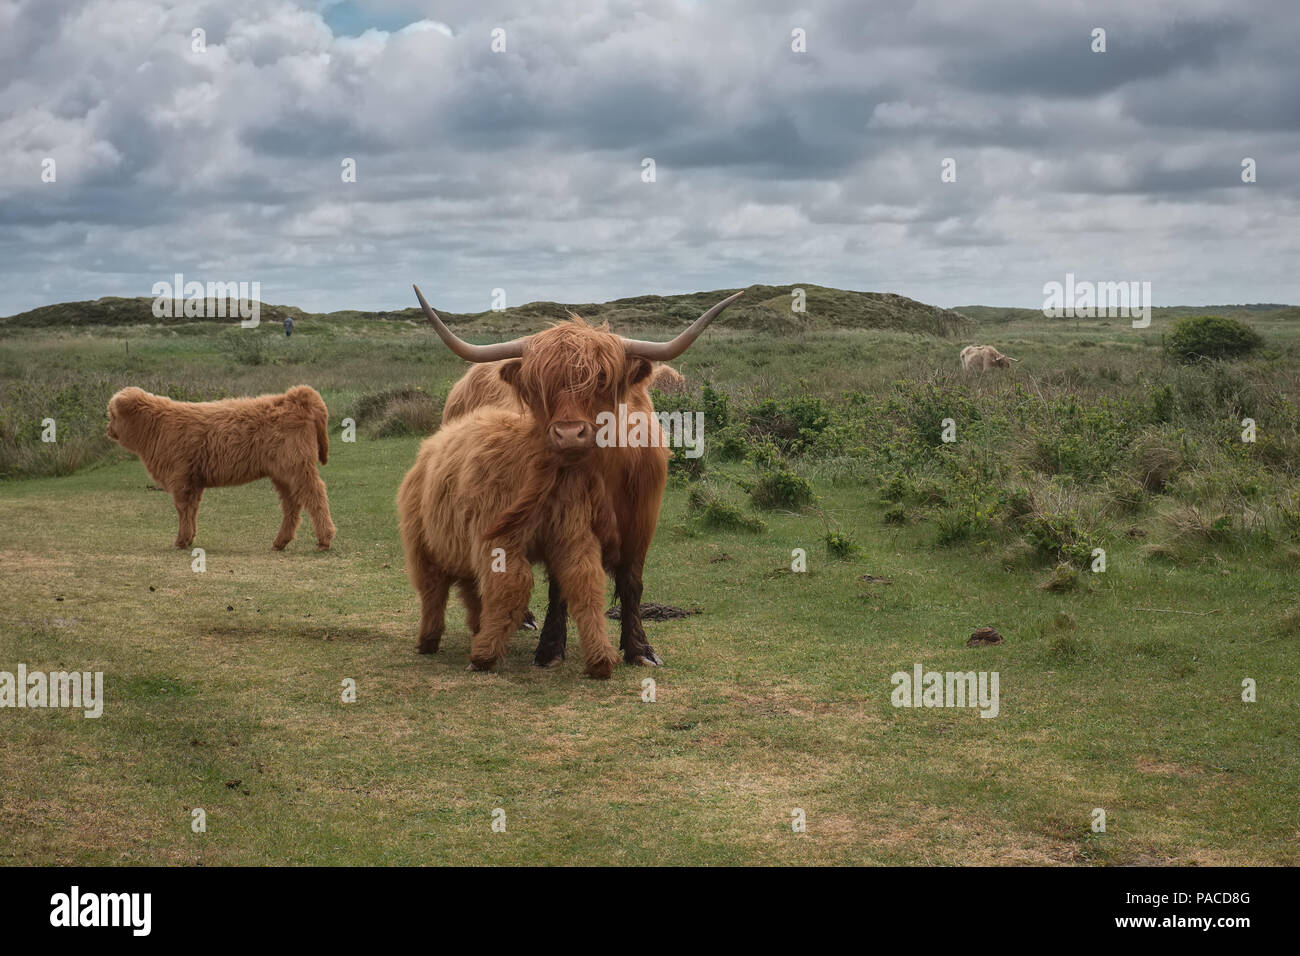 Scottish Highland cow and calf in the Dunes of Texel, the Netherlands. - Stock Image